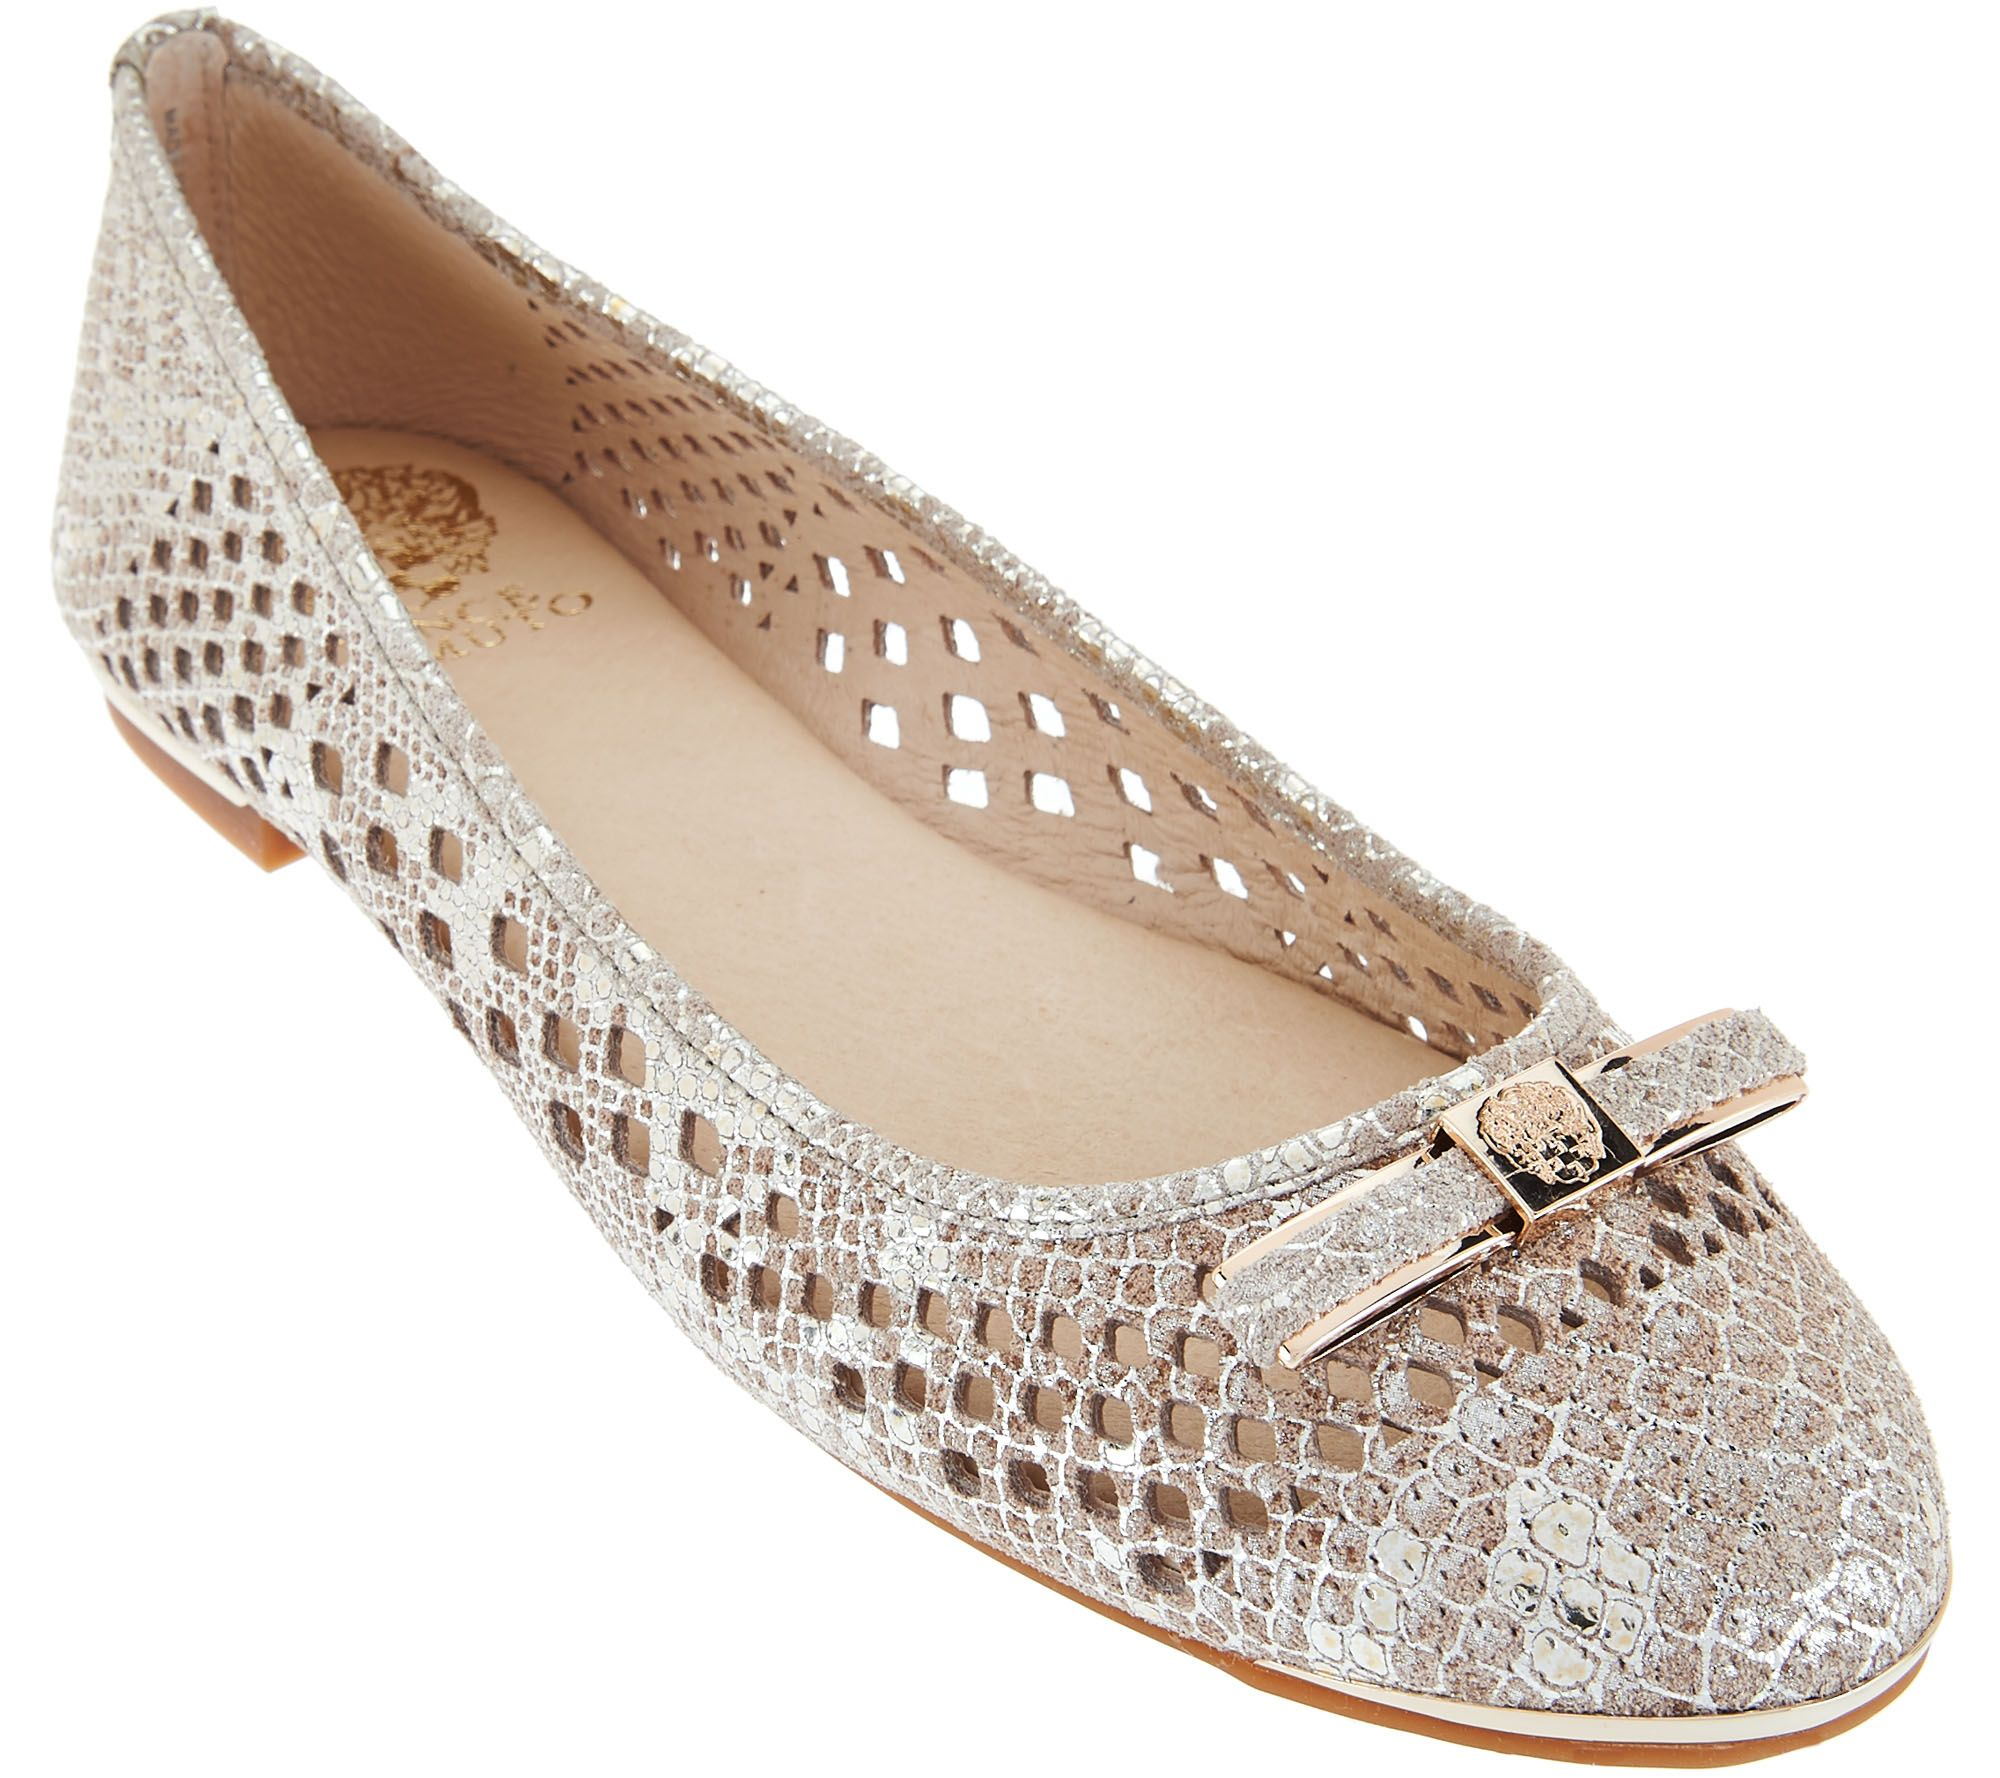 Vince Camuto Perforated Leather Flats Celindan Qvc Com